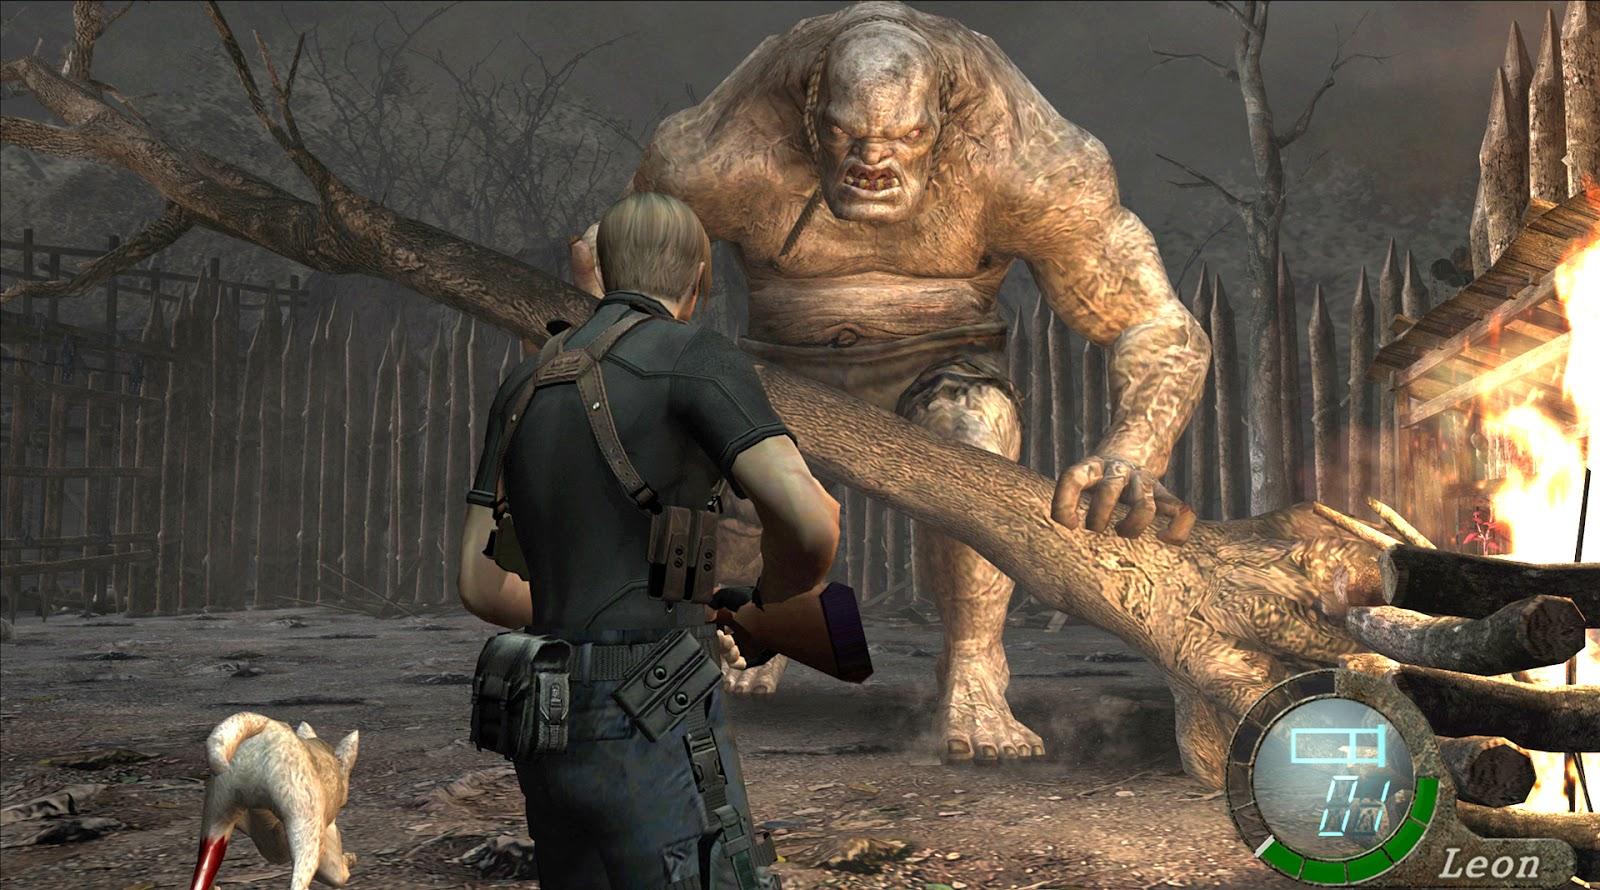 Download Resident Evil 4 Ultimate HD Game PC full Crack